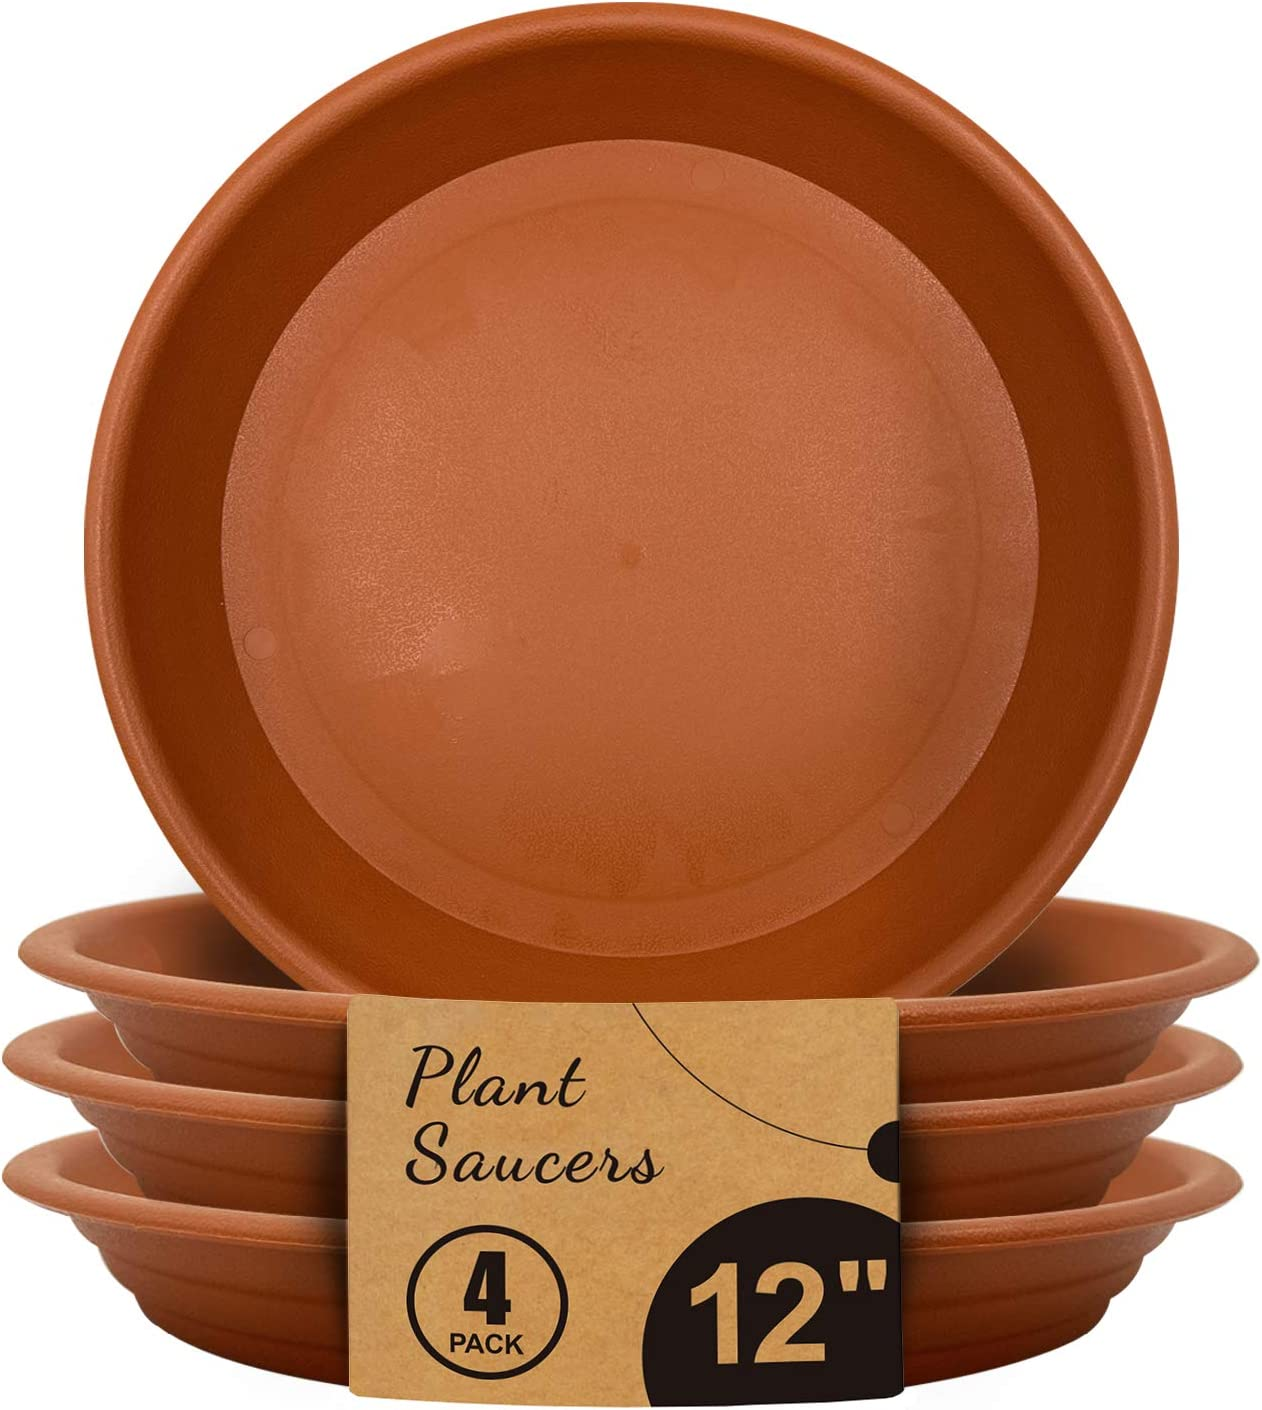 Jantens Plant Saucers - 4 Pack of 12 inch - Durable Thicker Plastic Plant Tray Flower Pot Saucers for Outdoors Indoors Flower Pots and Planters, Terracotta